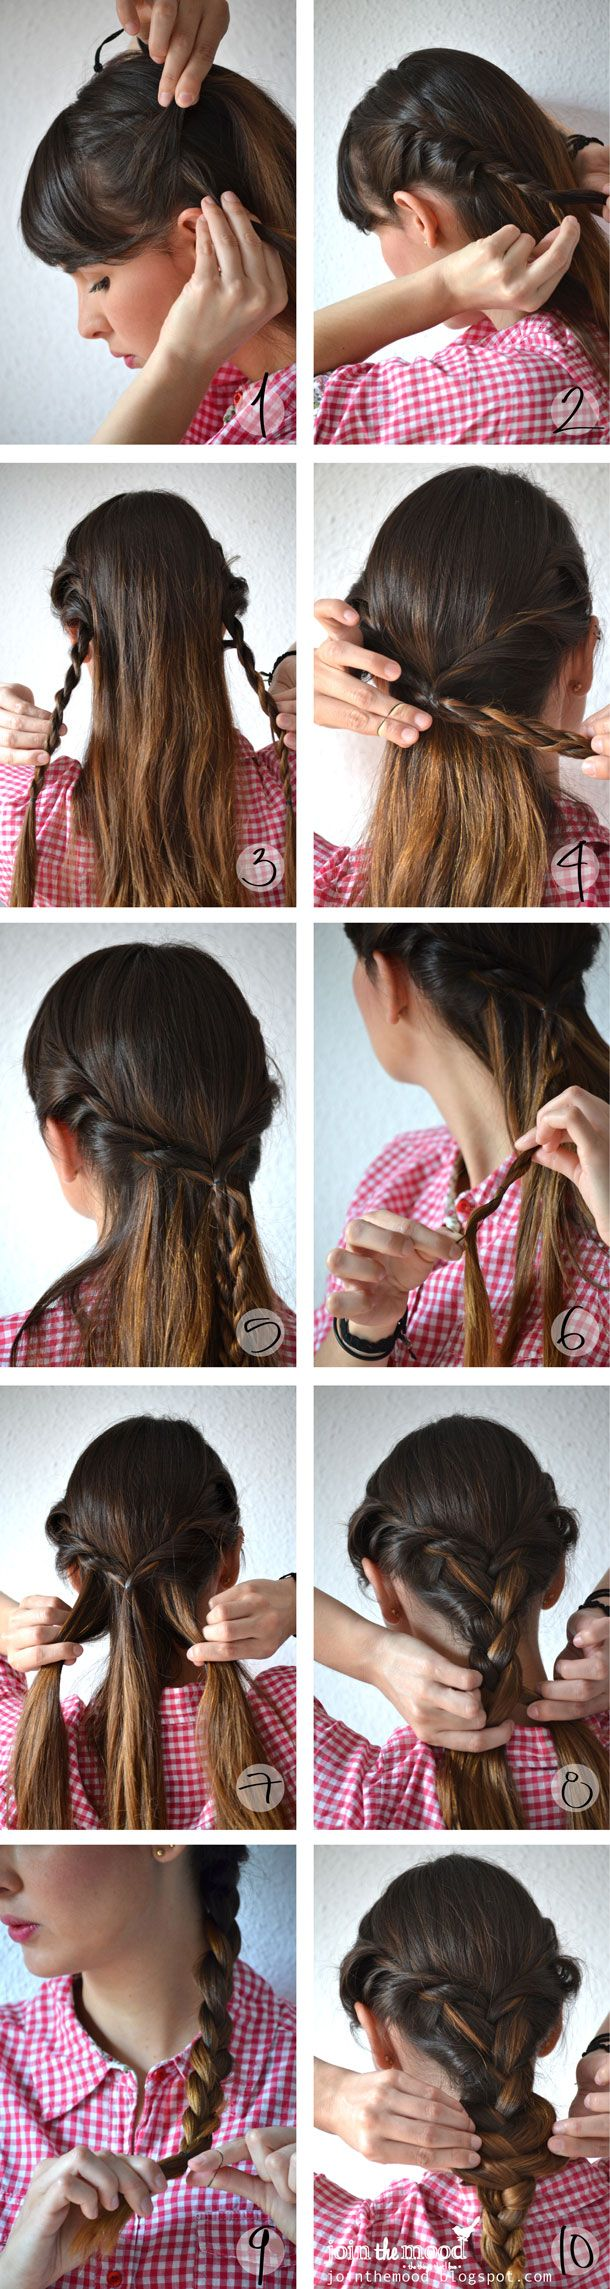 best coiffure images on pinterest easy hairstyle gorgeous